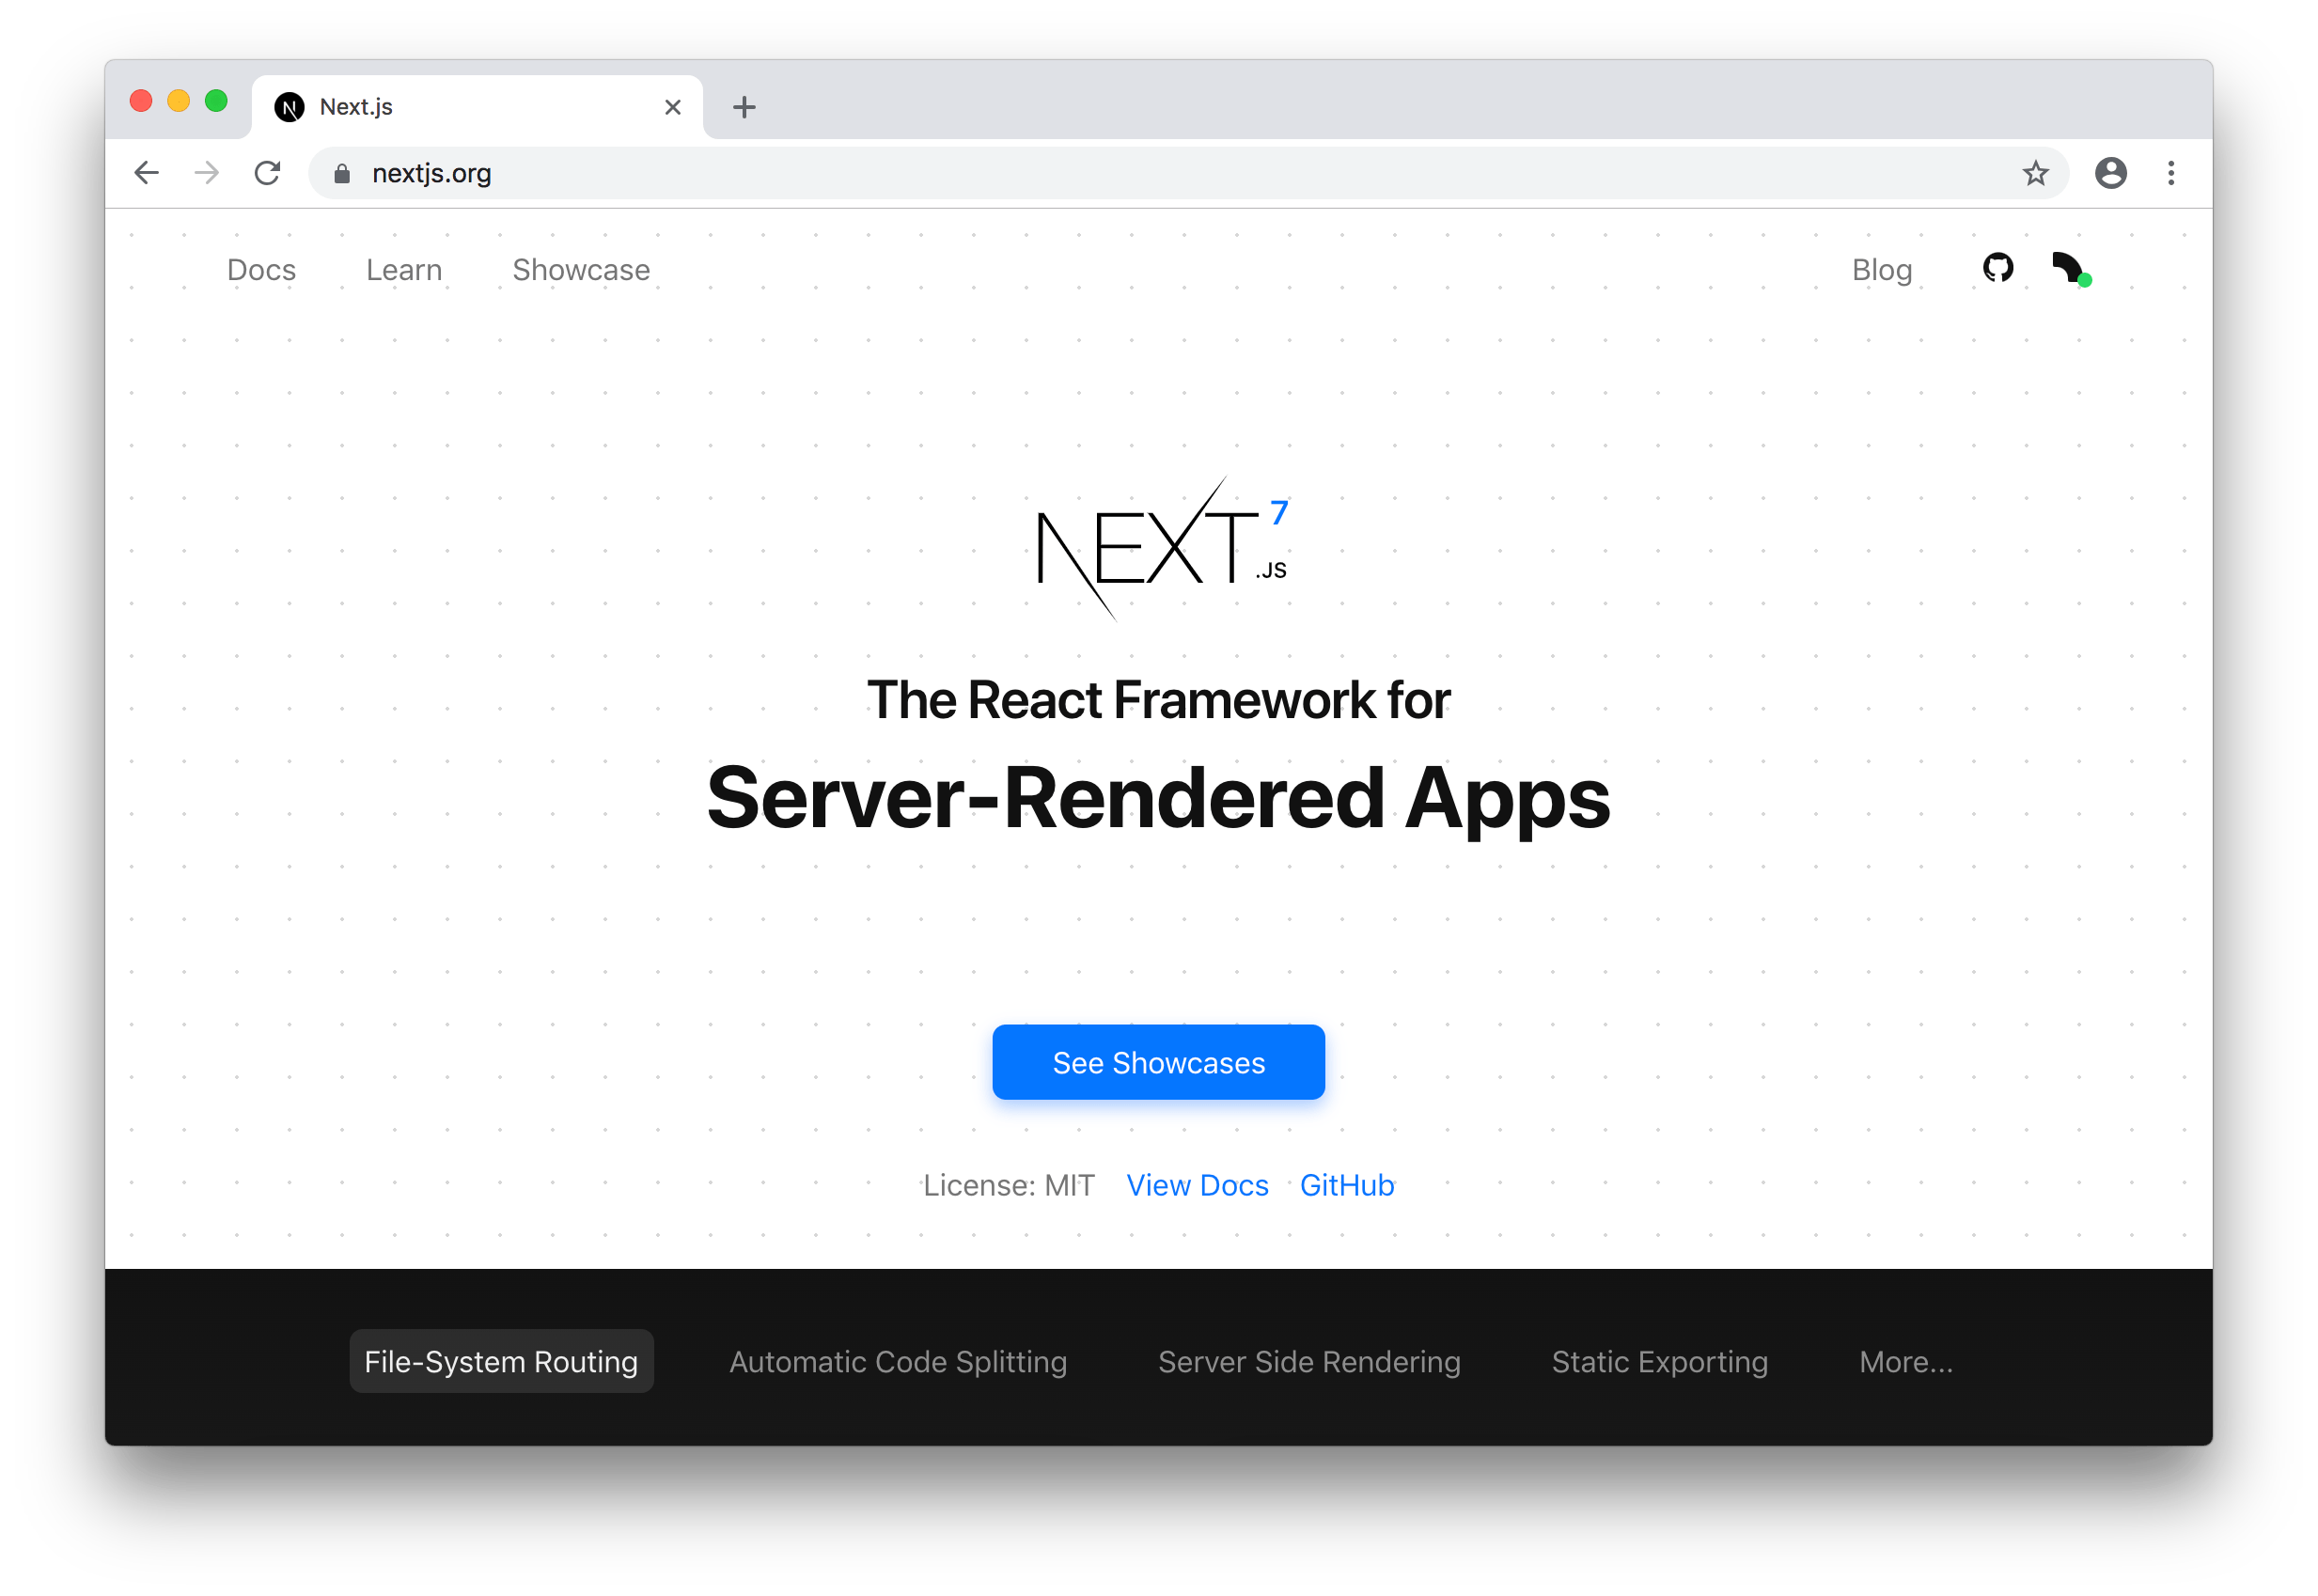 Blog - Next js 7 | Next js